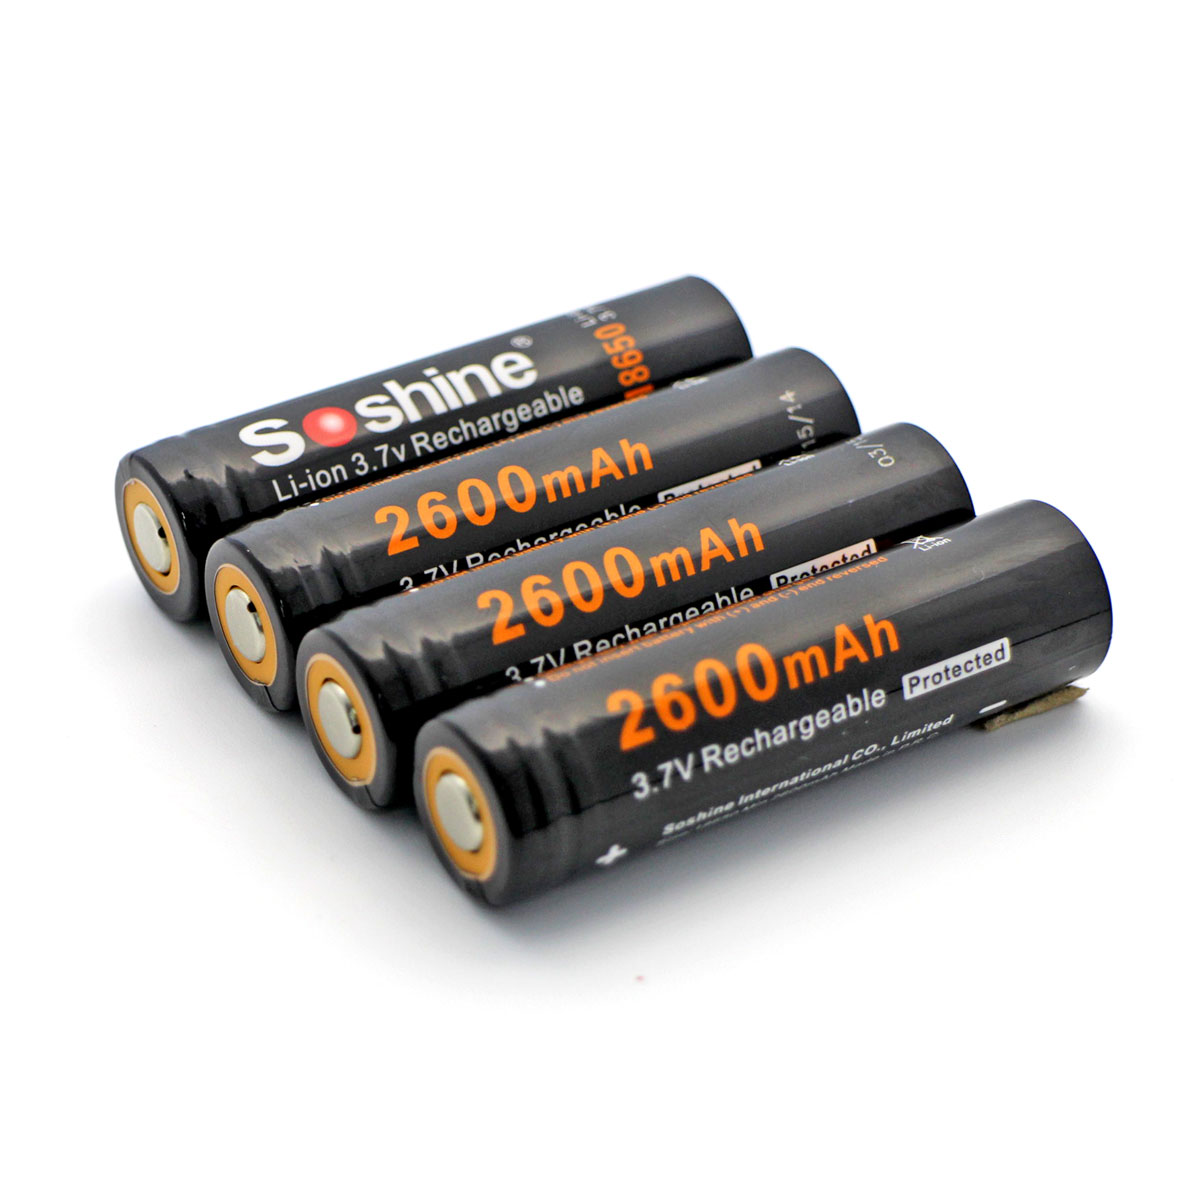 Soshine Li-ion 18650 Battery With Protected: 2600mAh